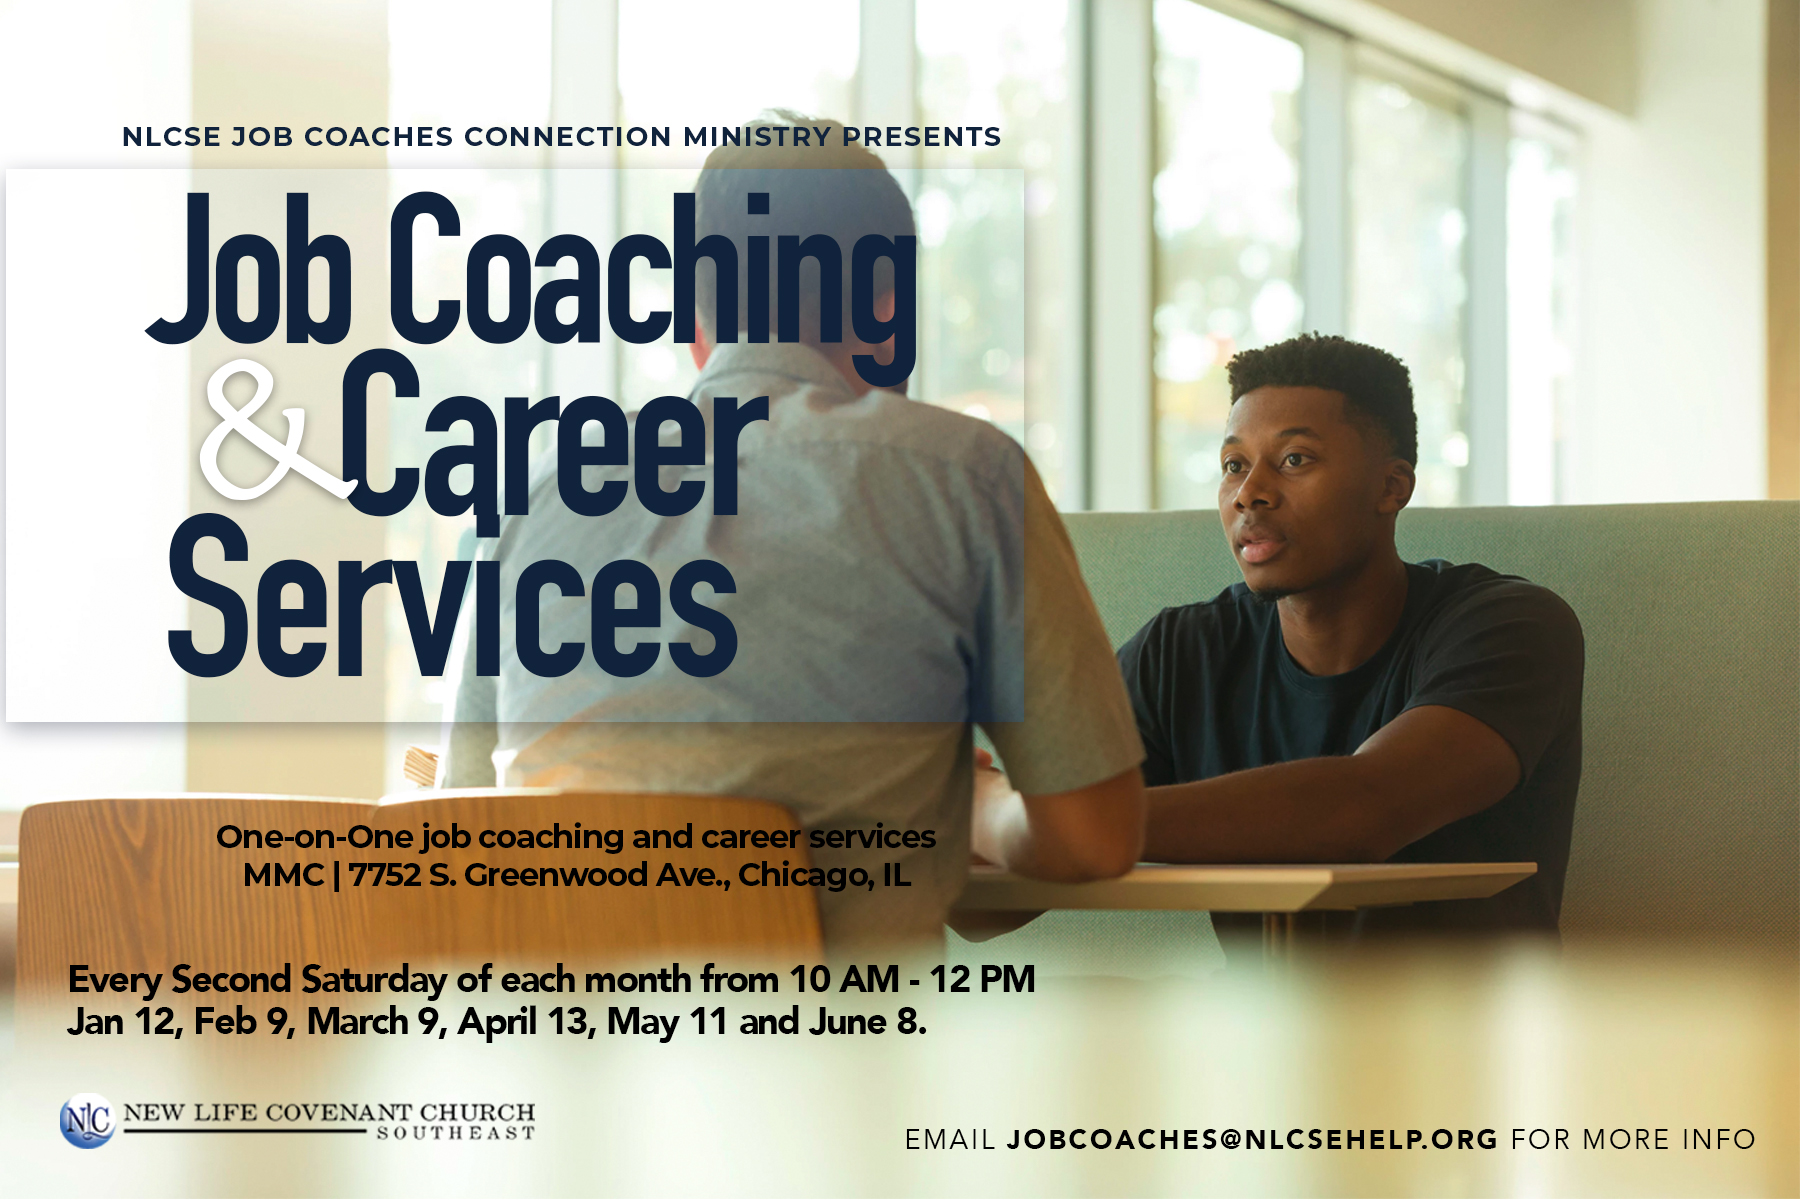 Job Coaches Postcard 2019.jpg